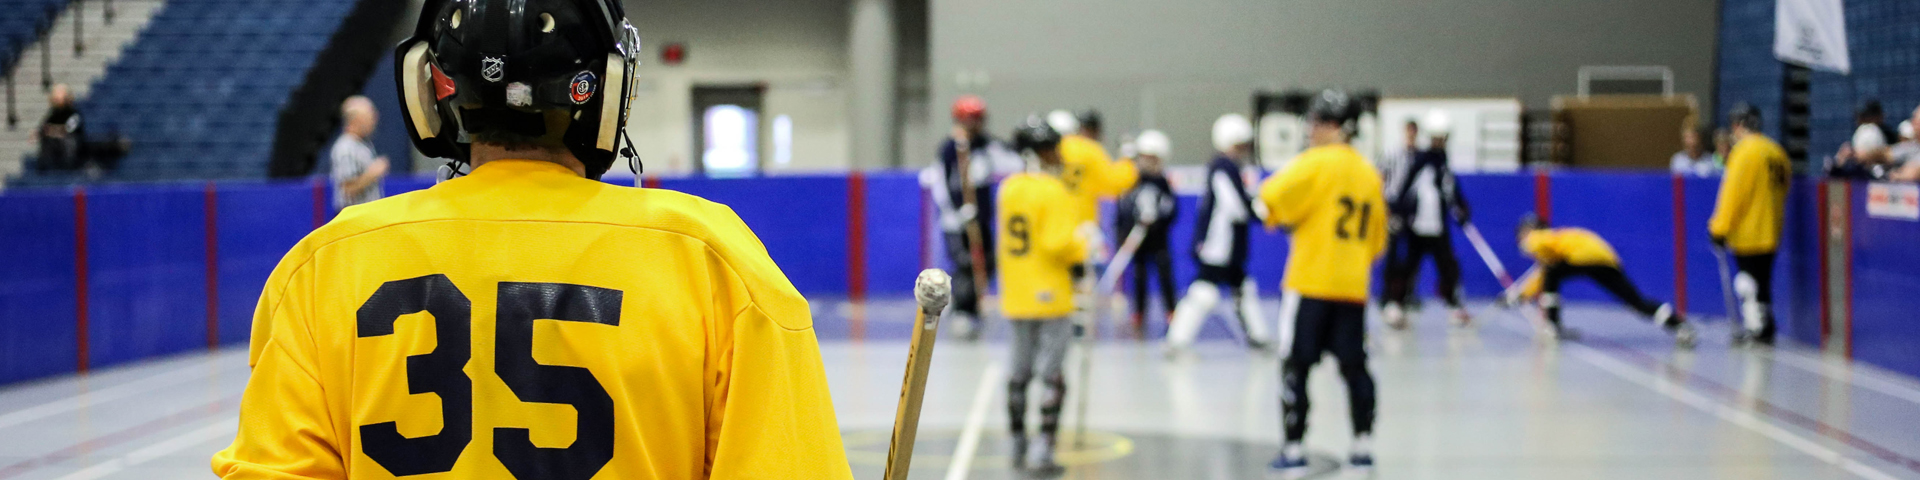 special olympics floor hockey